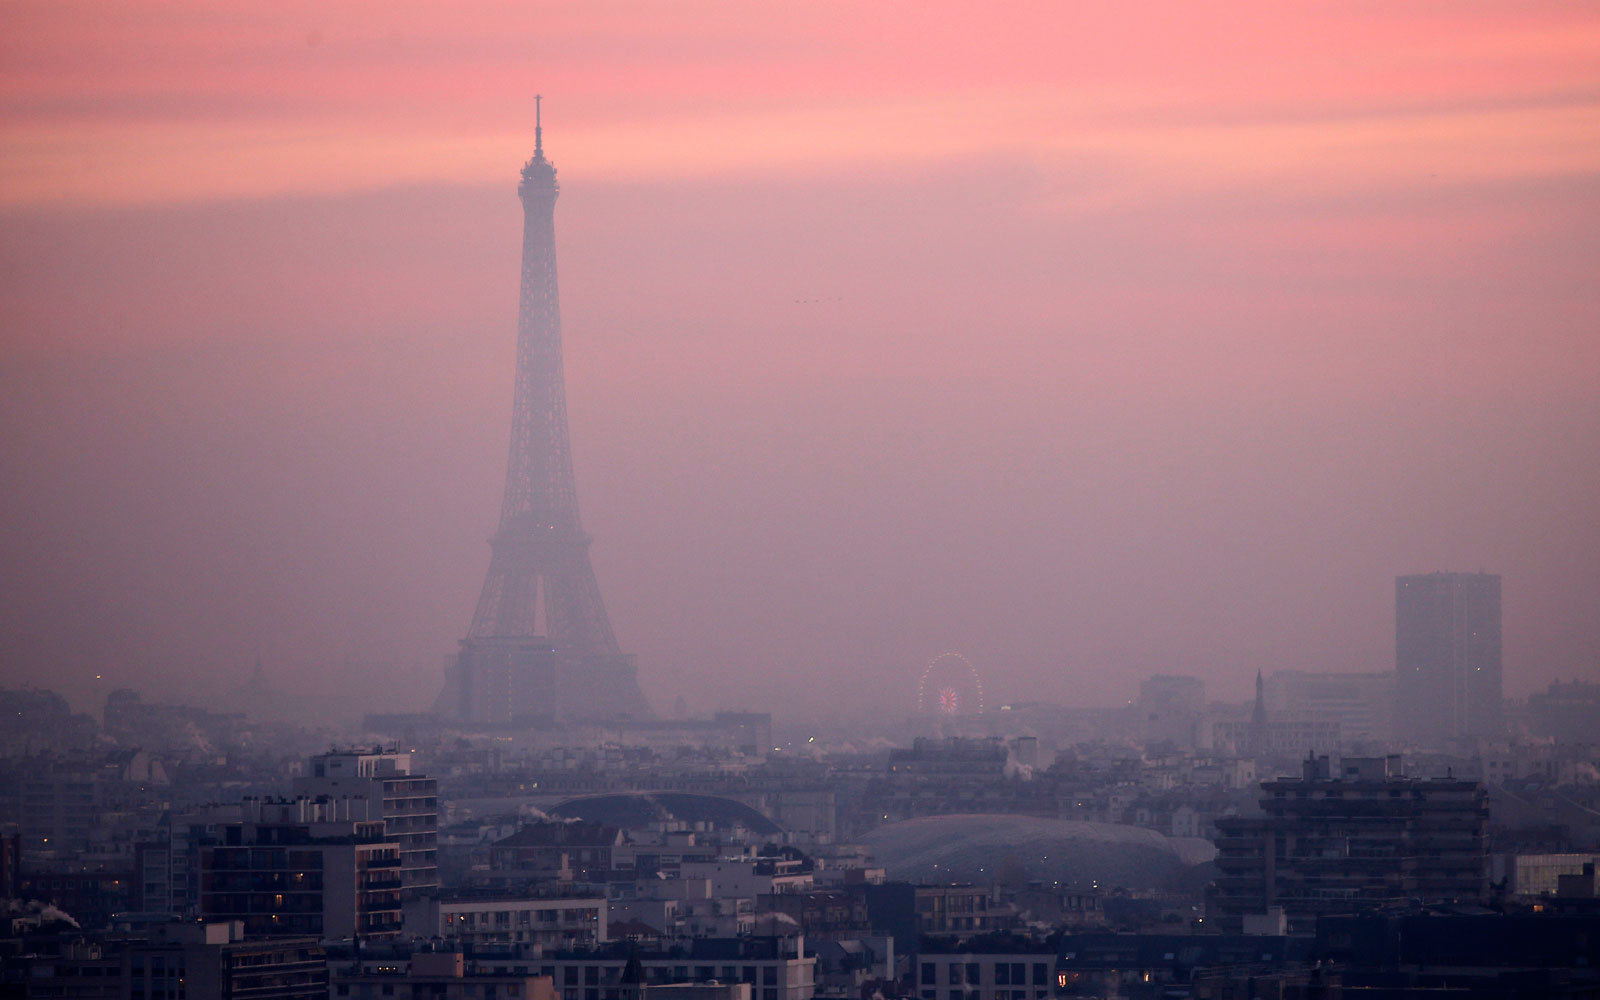 Paris pollution over Eiffel Tower